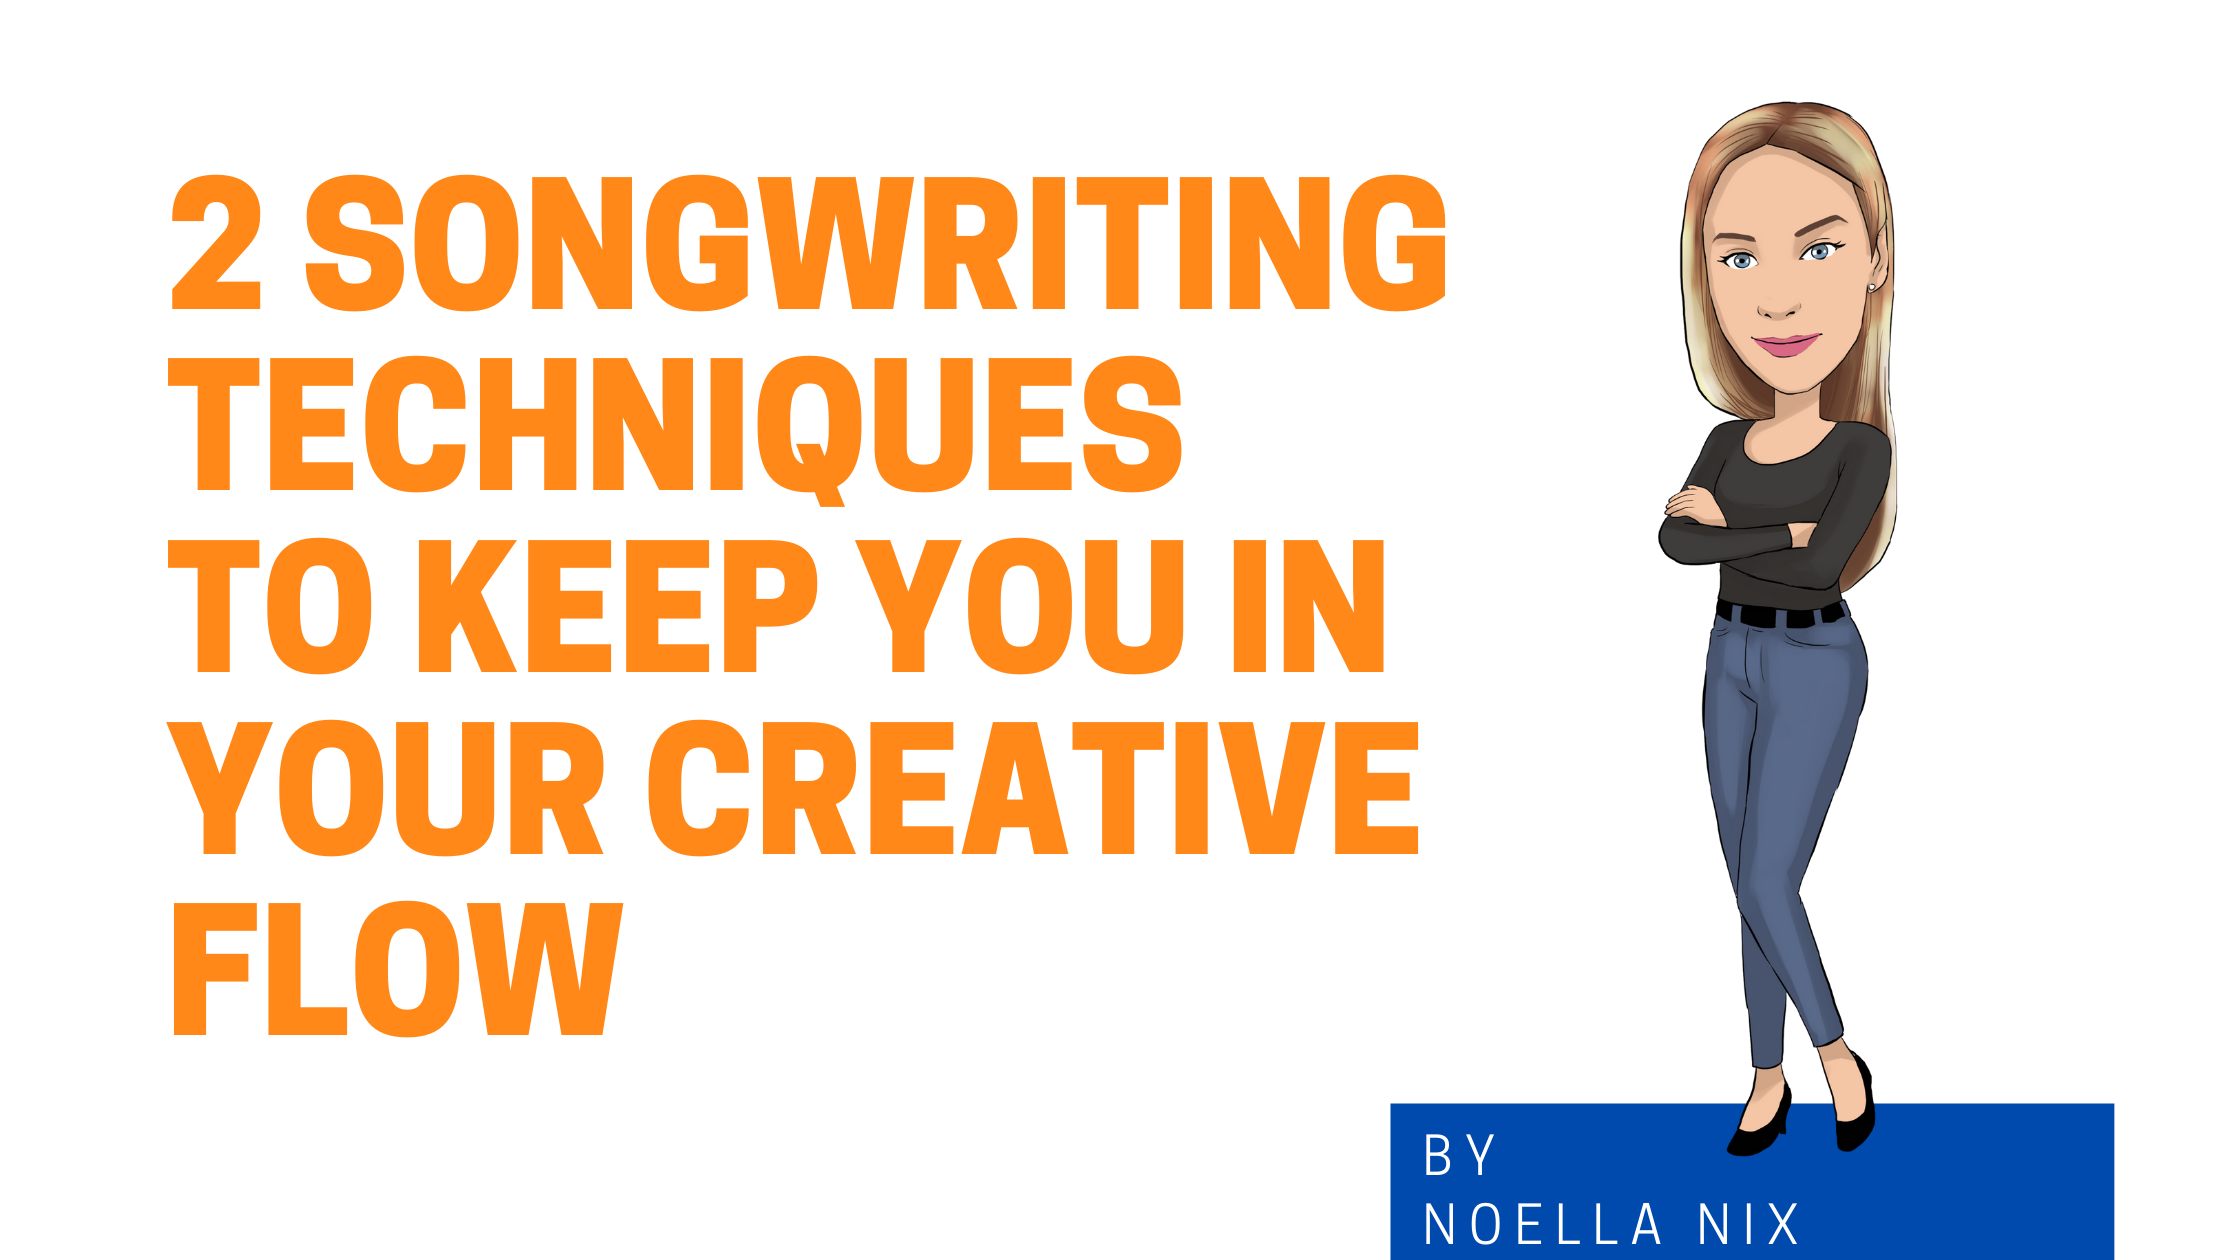 2 Songwriting Techniques To Keep You In Your Creative Flow Image graphic